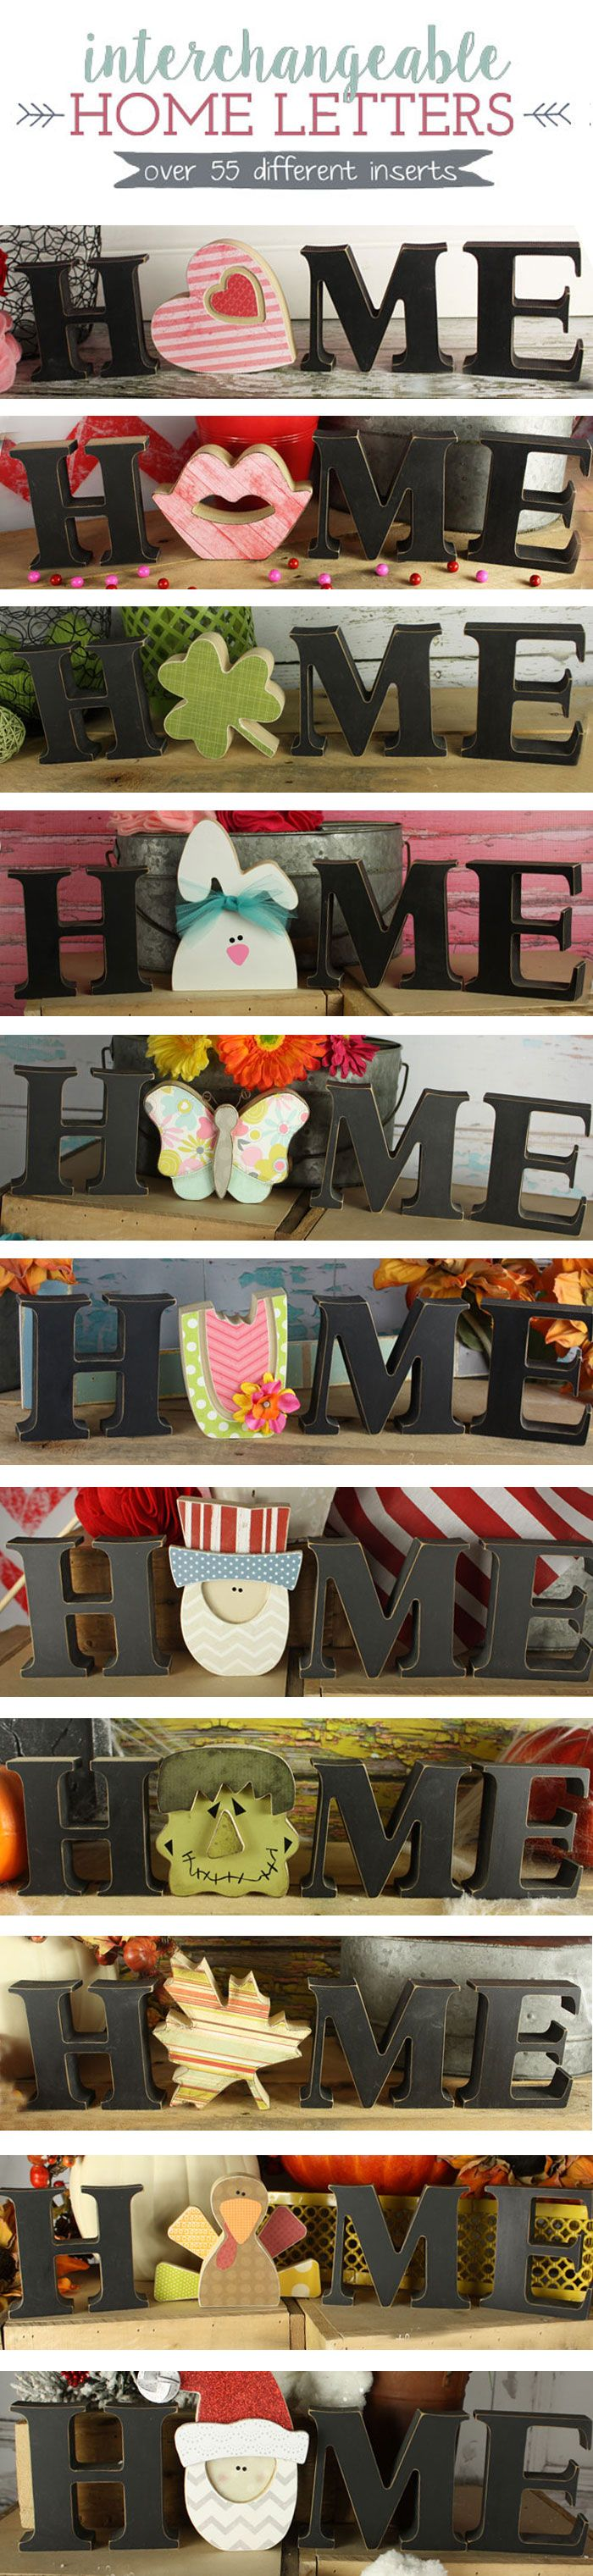 "OMG I LOVE these! Interchangeable Home Letters. Over 55 different inserts for the letter ""O"". Swap it out for each holiday/season. So Cute!!"